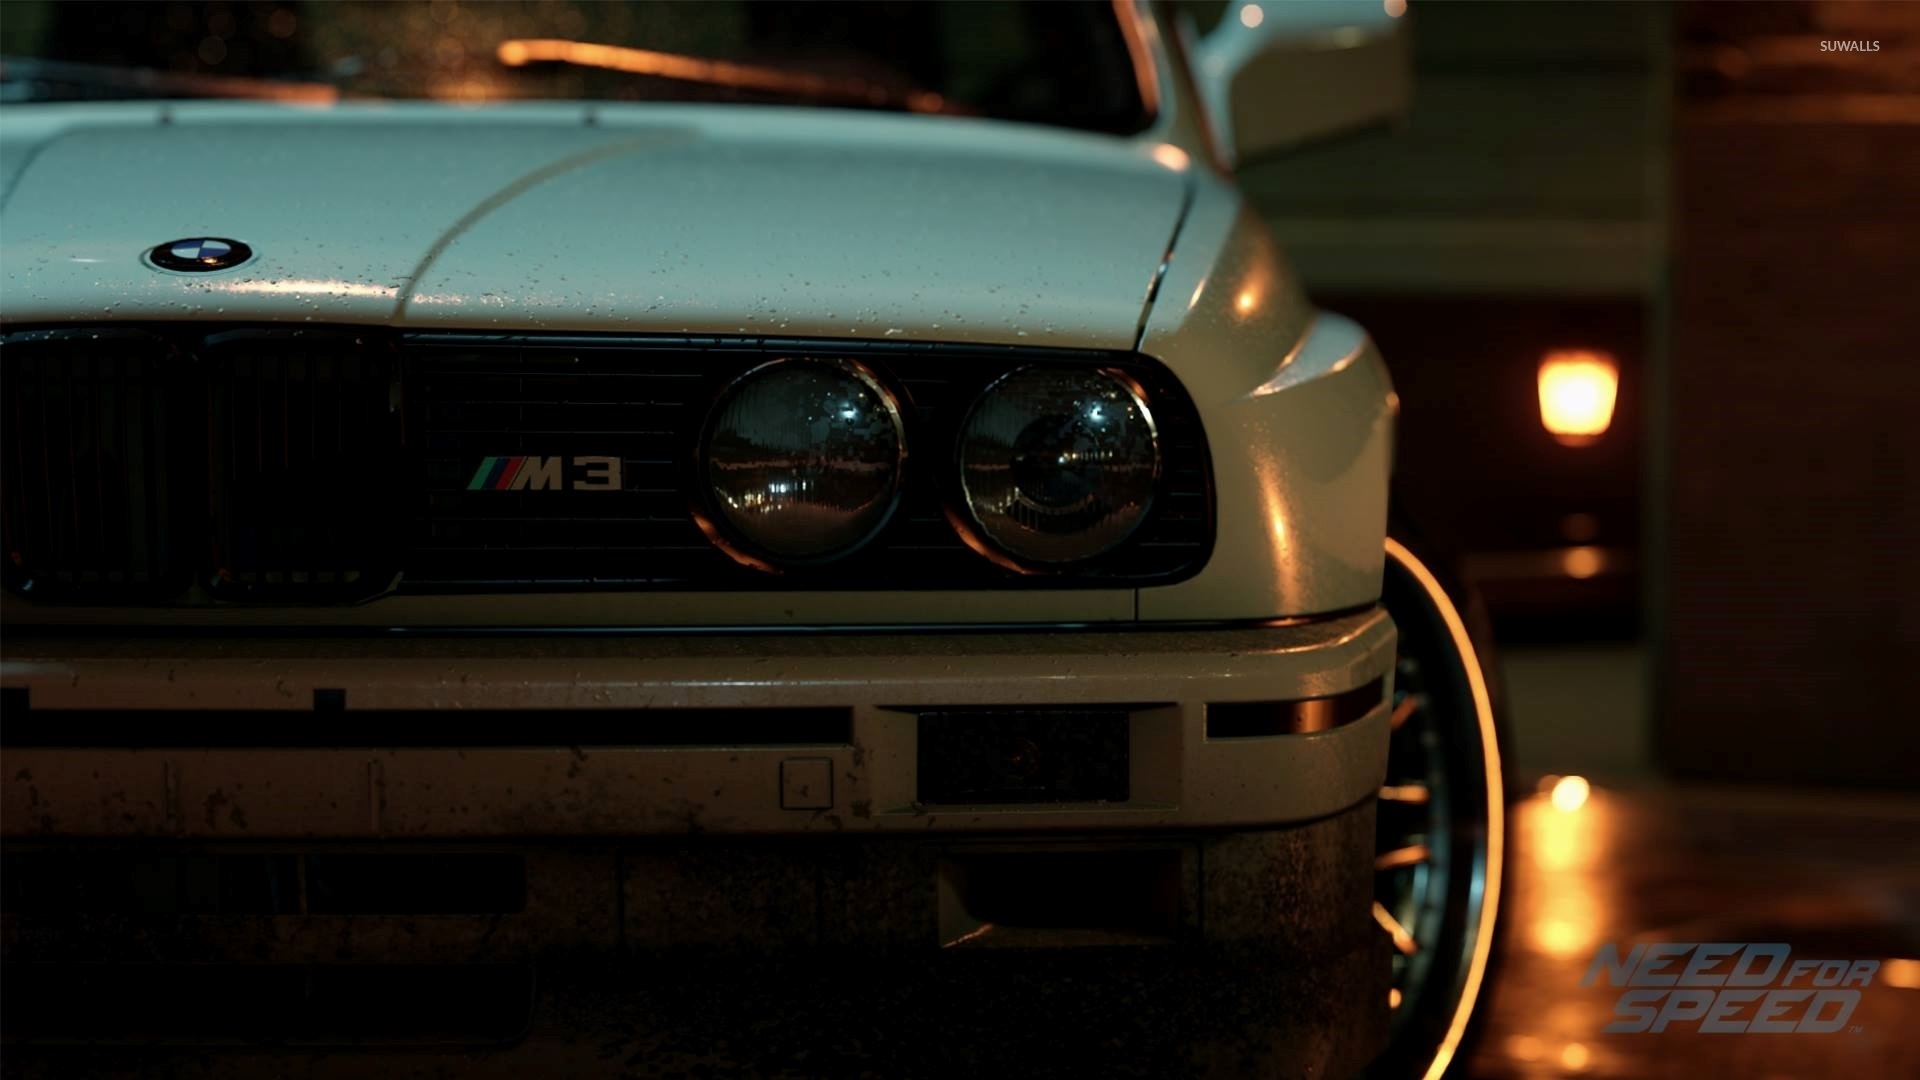 BMW M3 - Need for Speed wallpaper